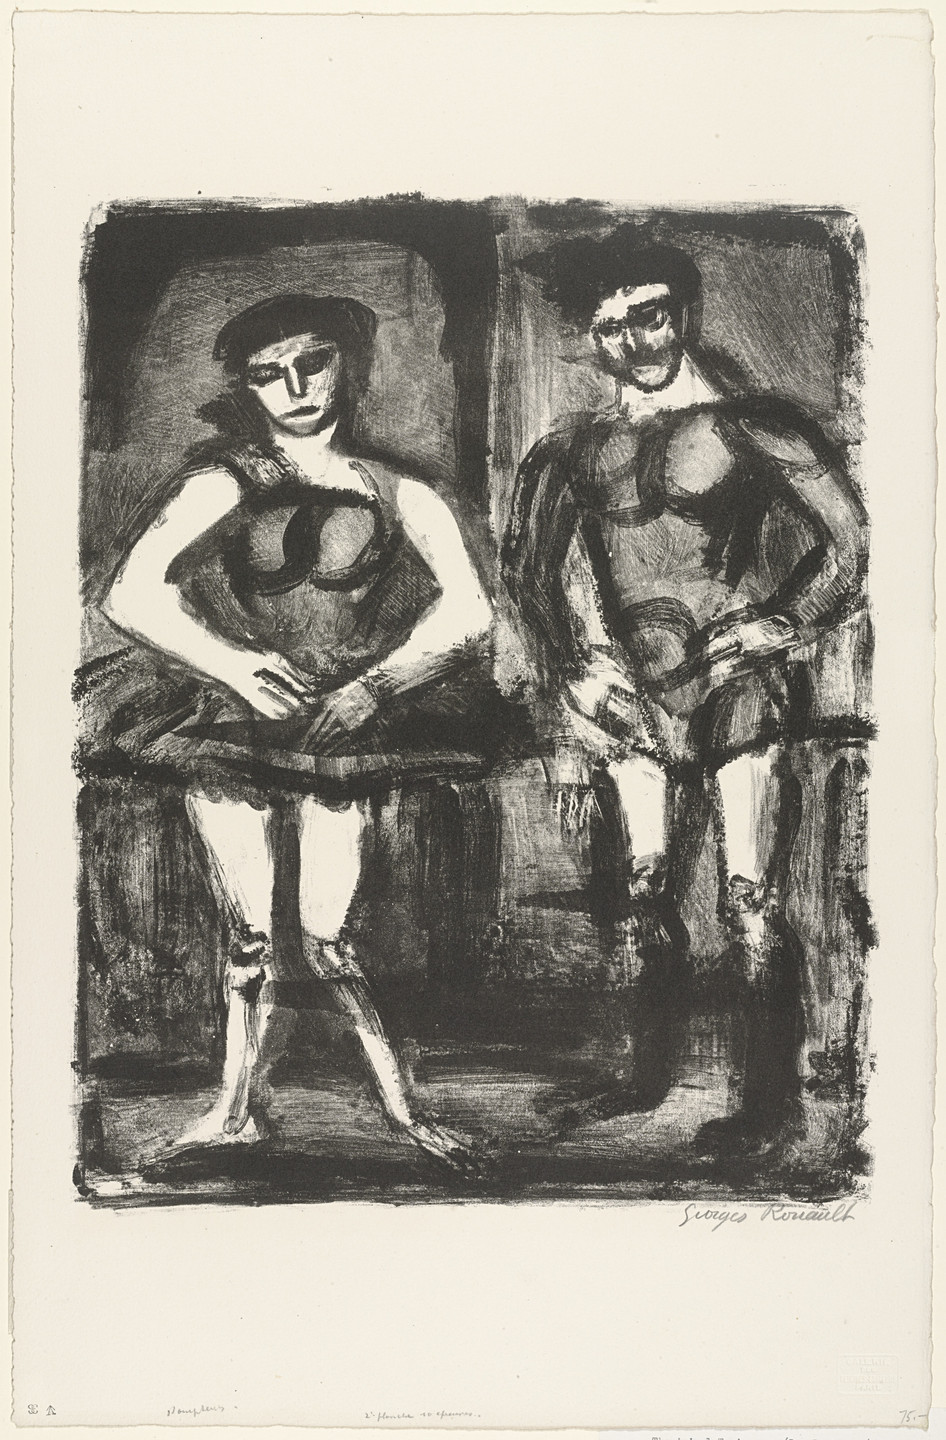 Georges Rouault. The Animal Trainers (Les Dompteurs), second plate. c. 1924-27